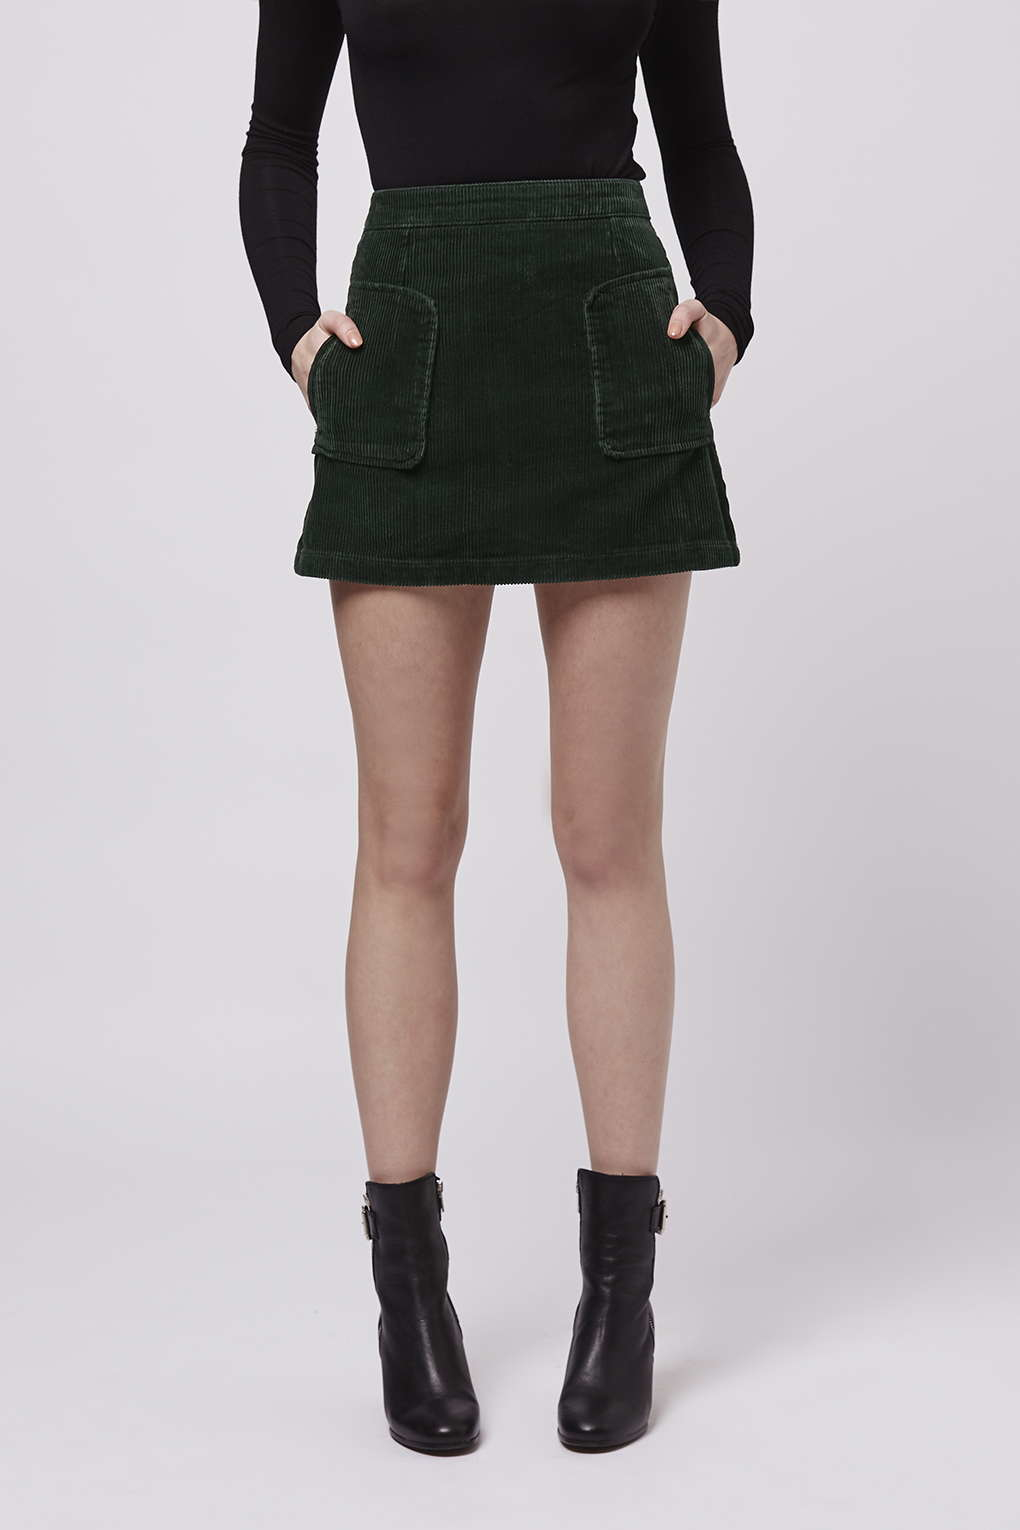 Topshop Patch Pocket Cord A-line Skirt in Green | Lyst